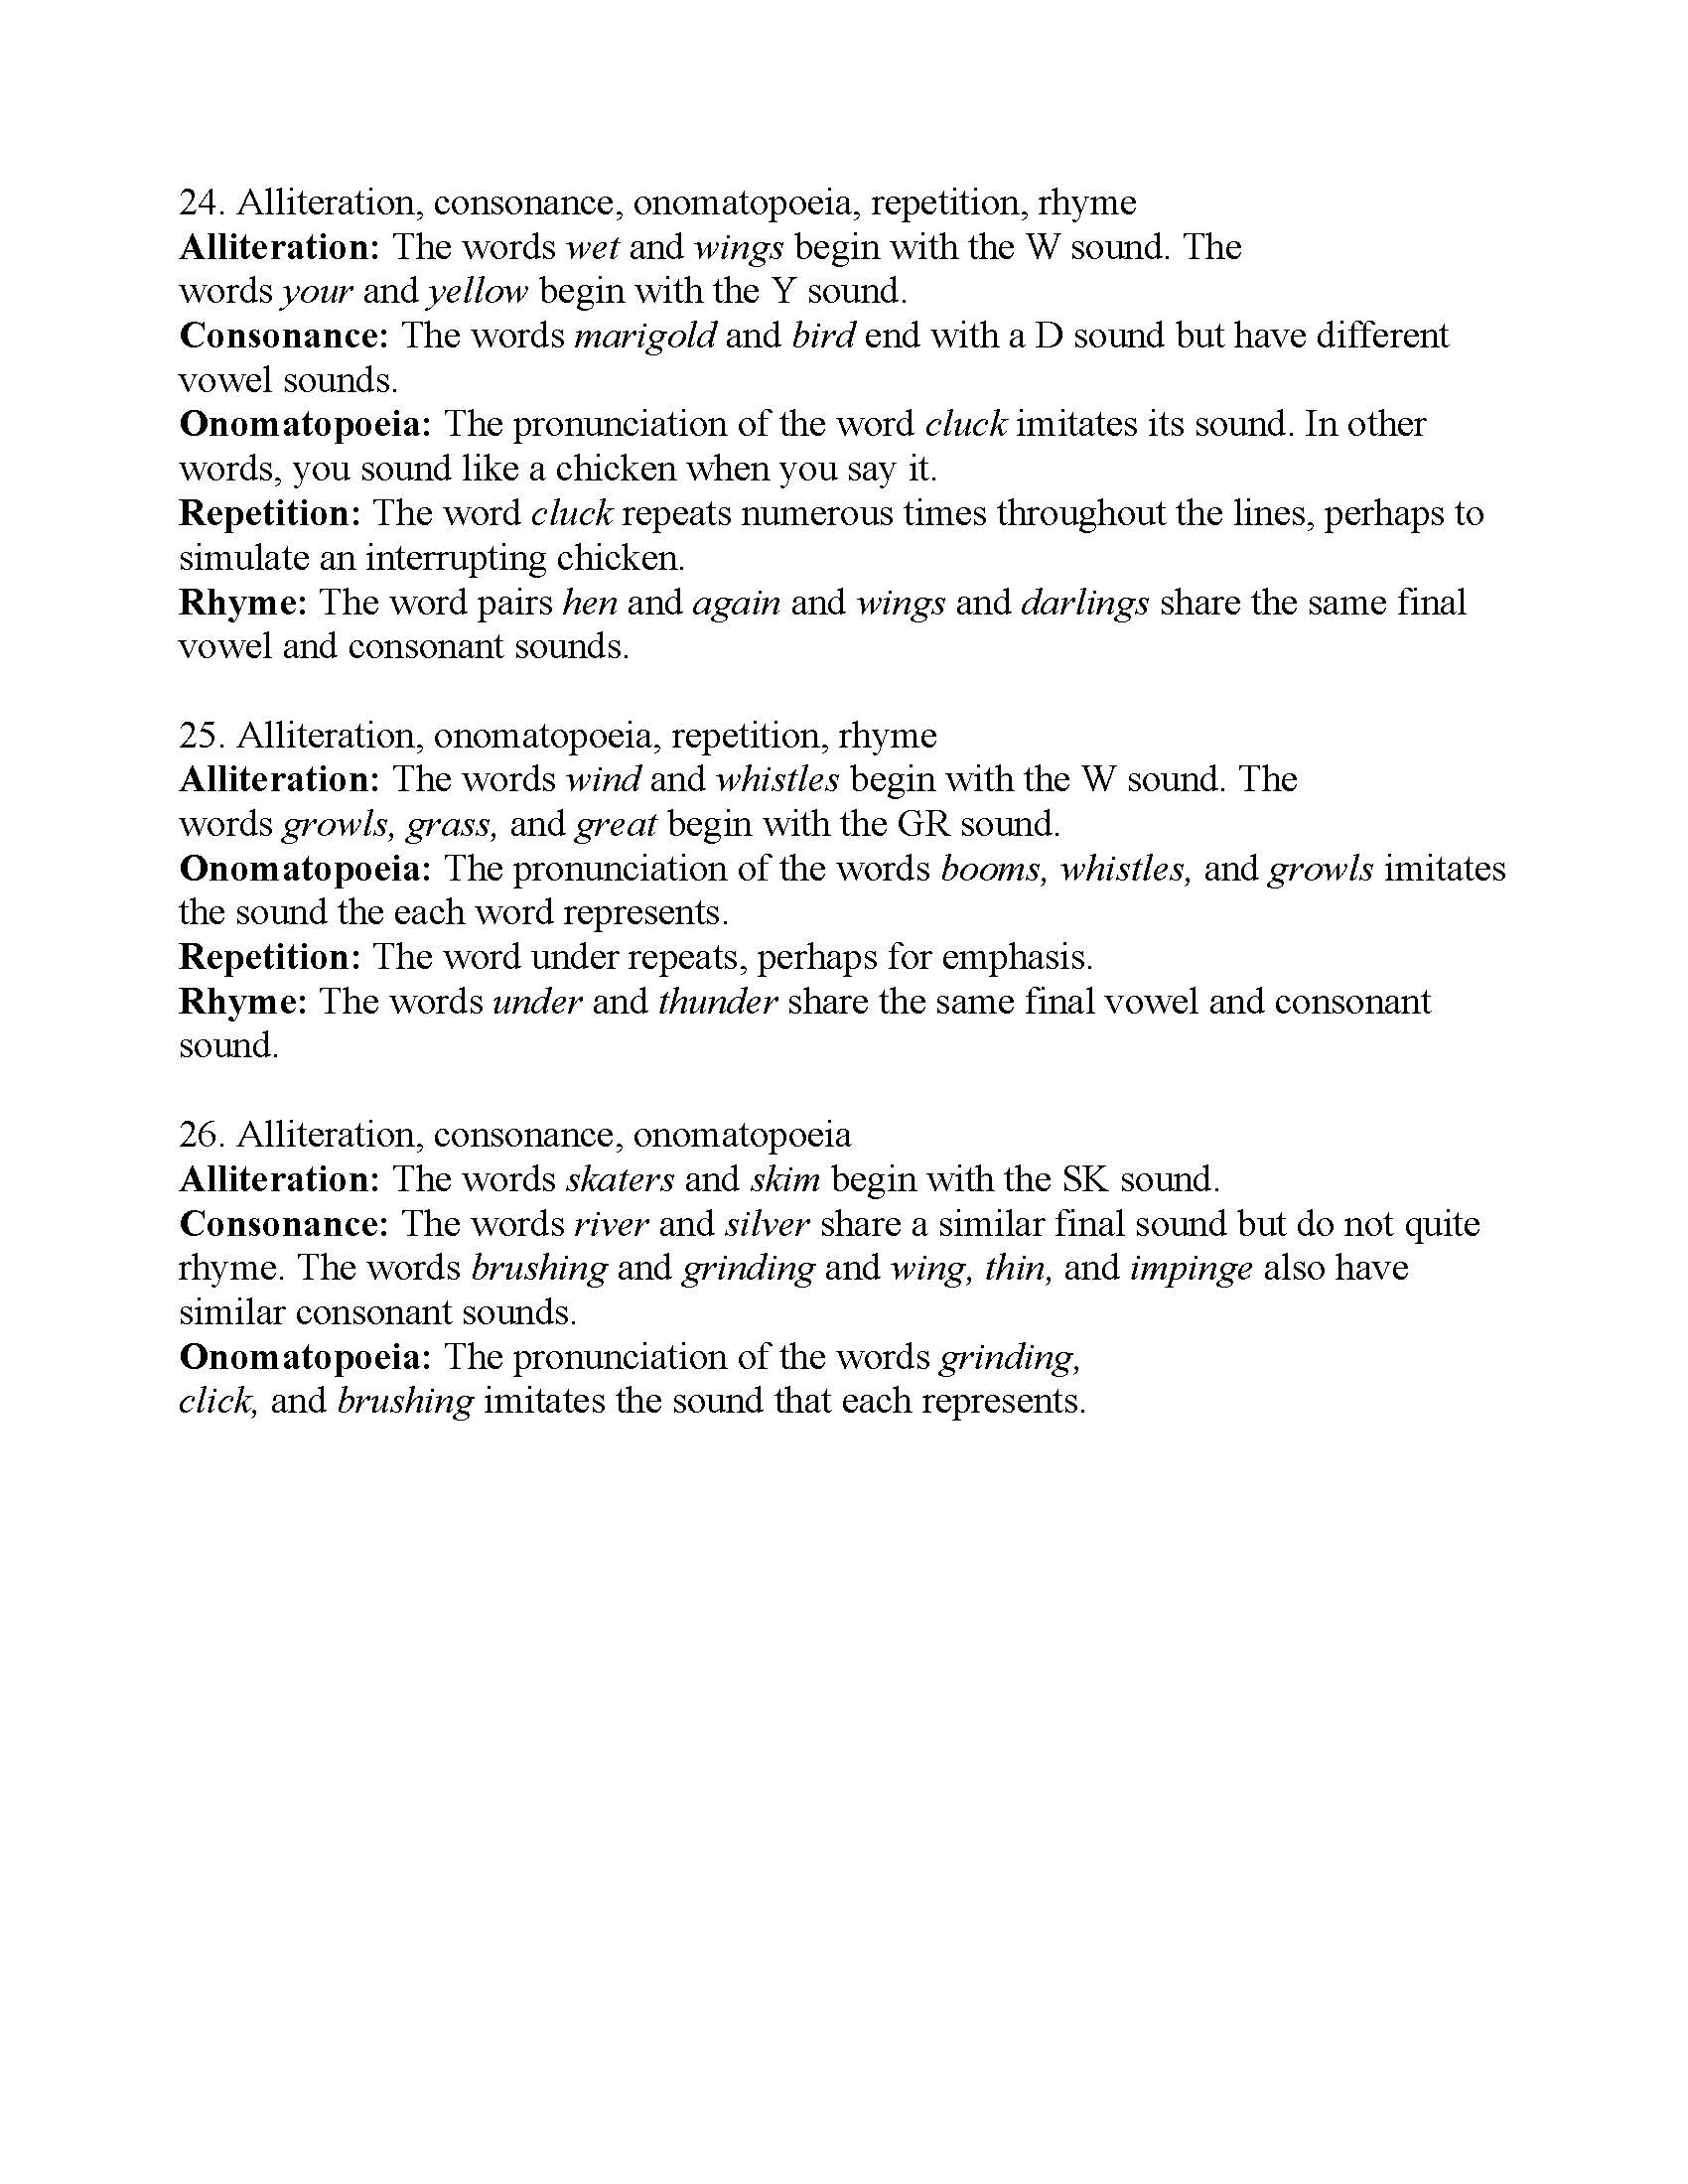 hight resolution of Sound Devices In Poetry Worksheet - Promotiontablecovers